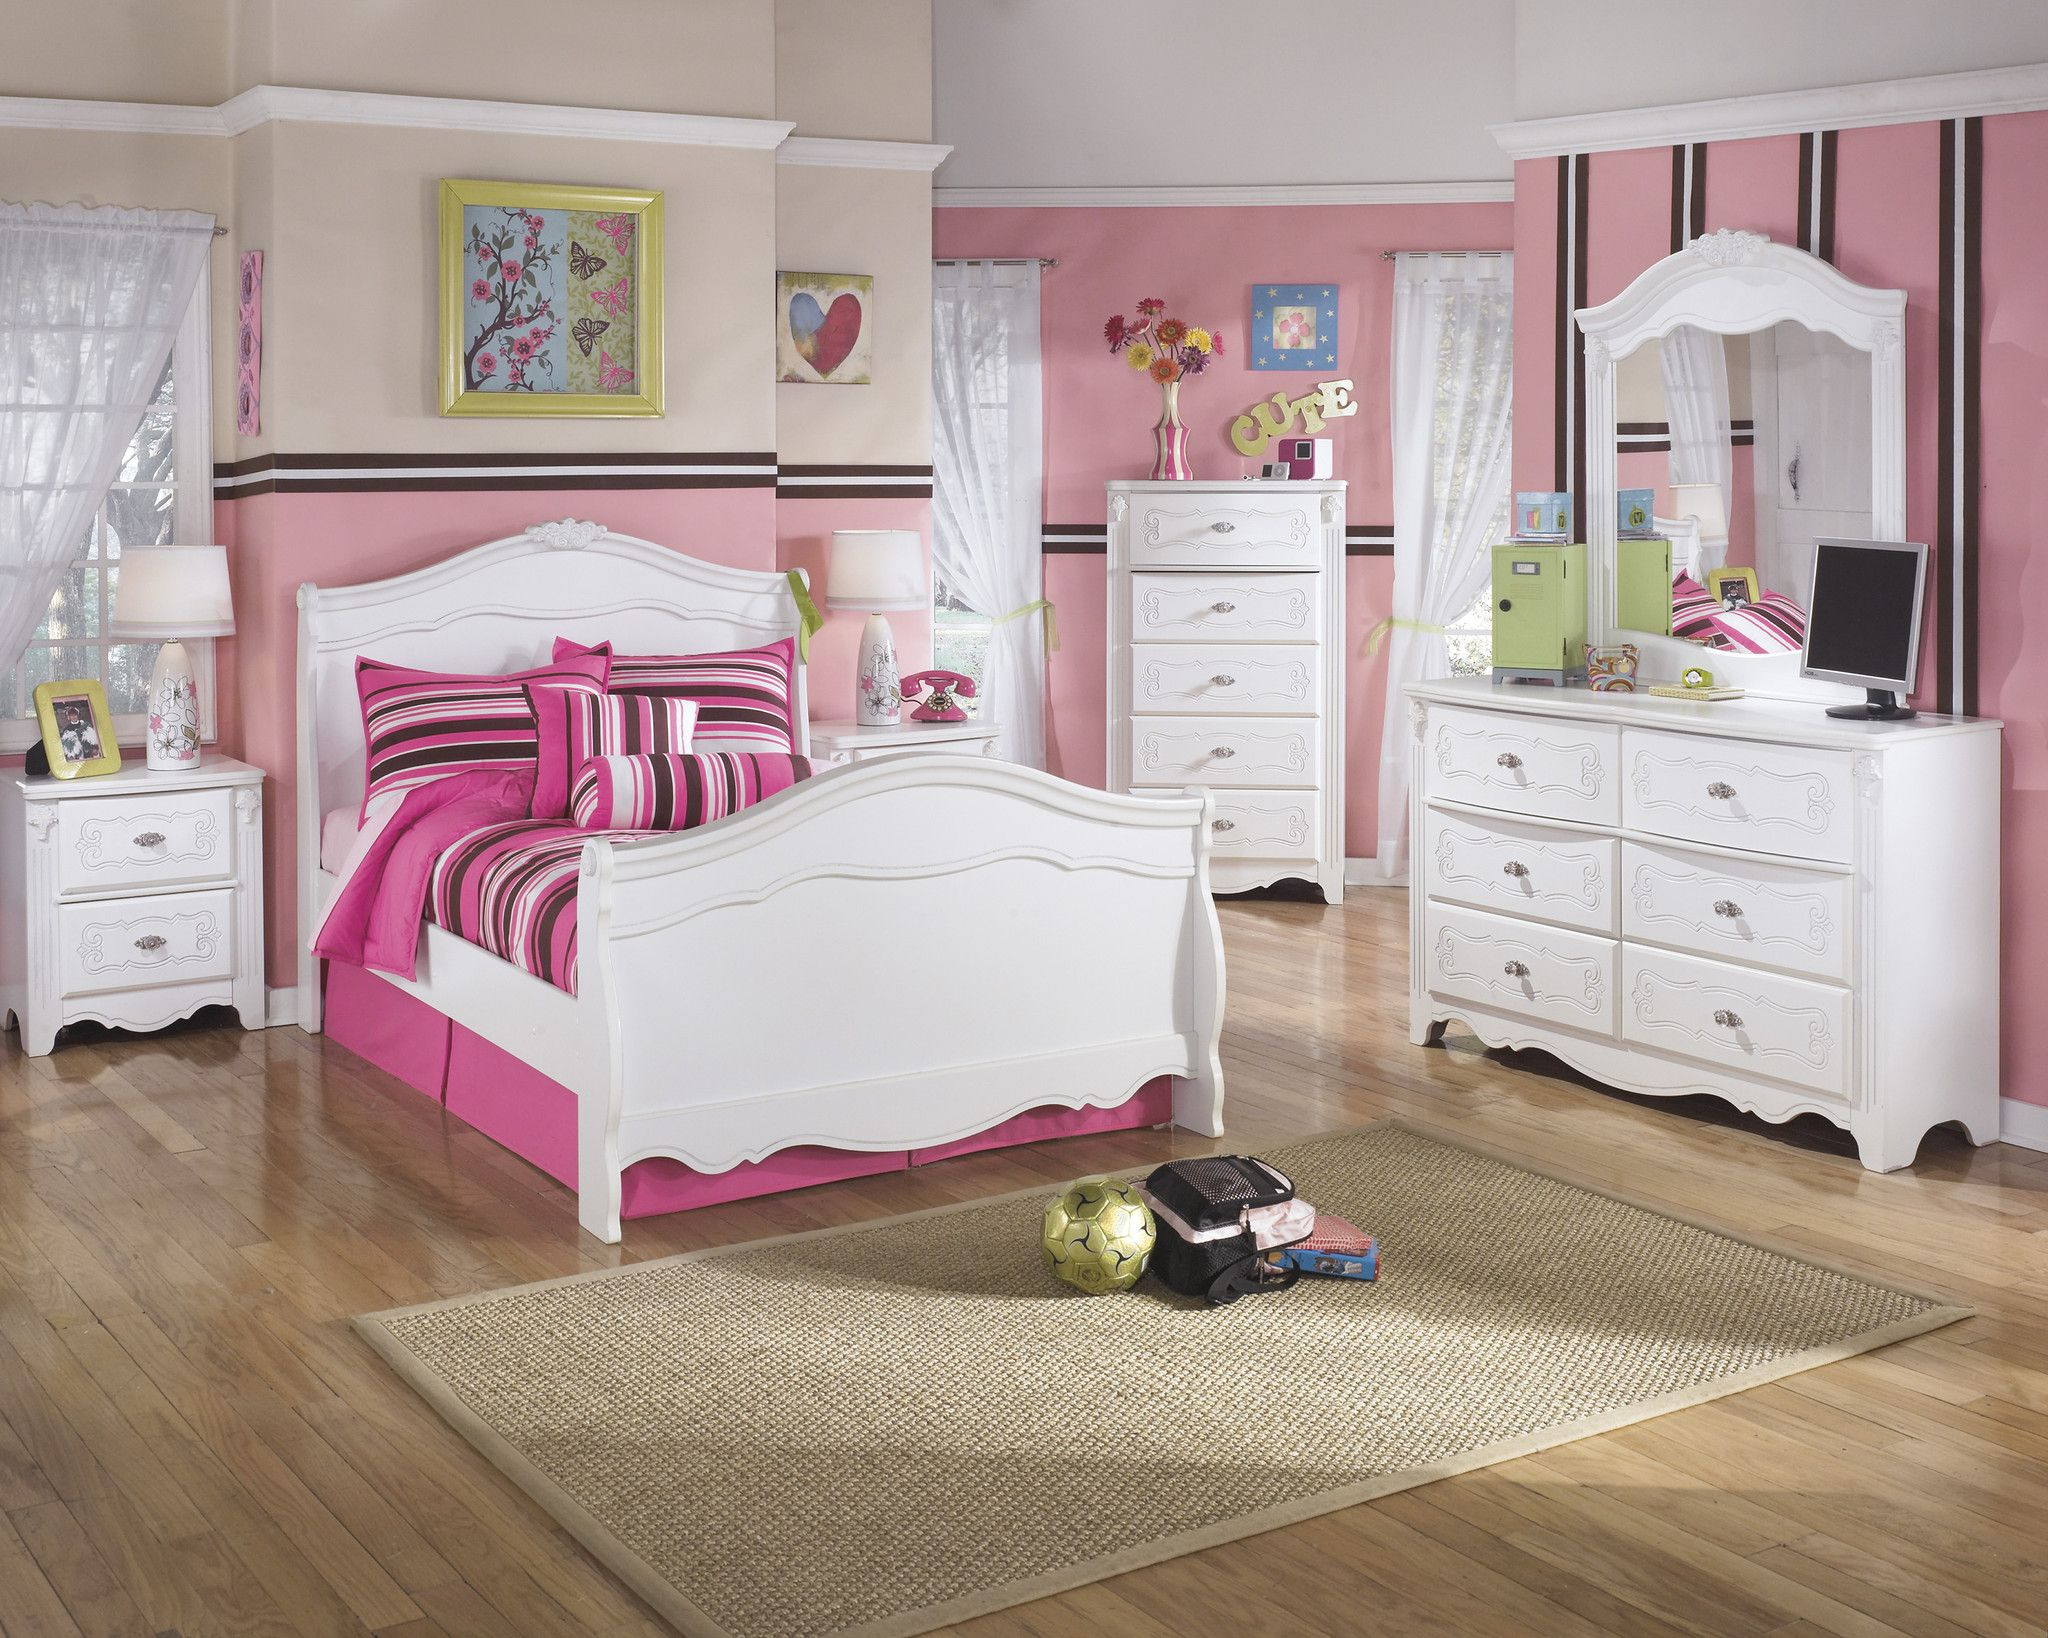 boston footboard new furniture worcester headboard ri item providence panel ma poster and england jordan design beds twin collections bedroom rotmans bed ashley signature by sets yhf kids